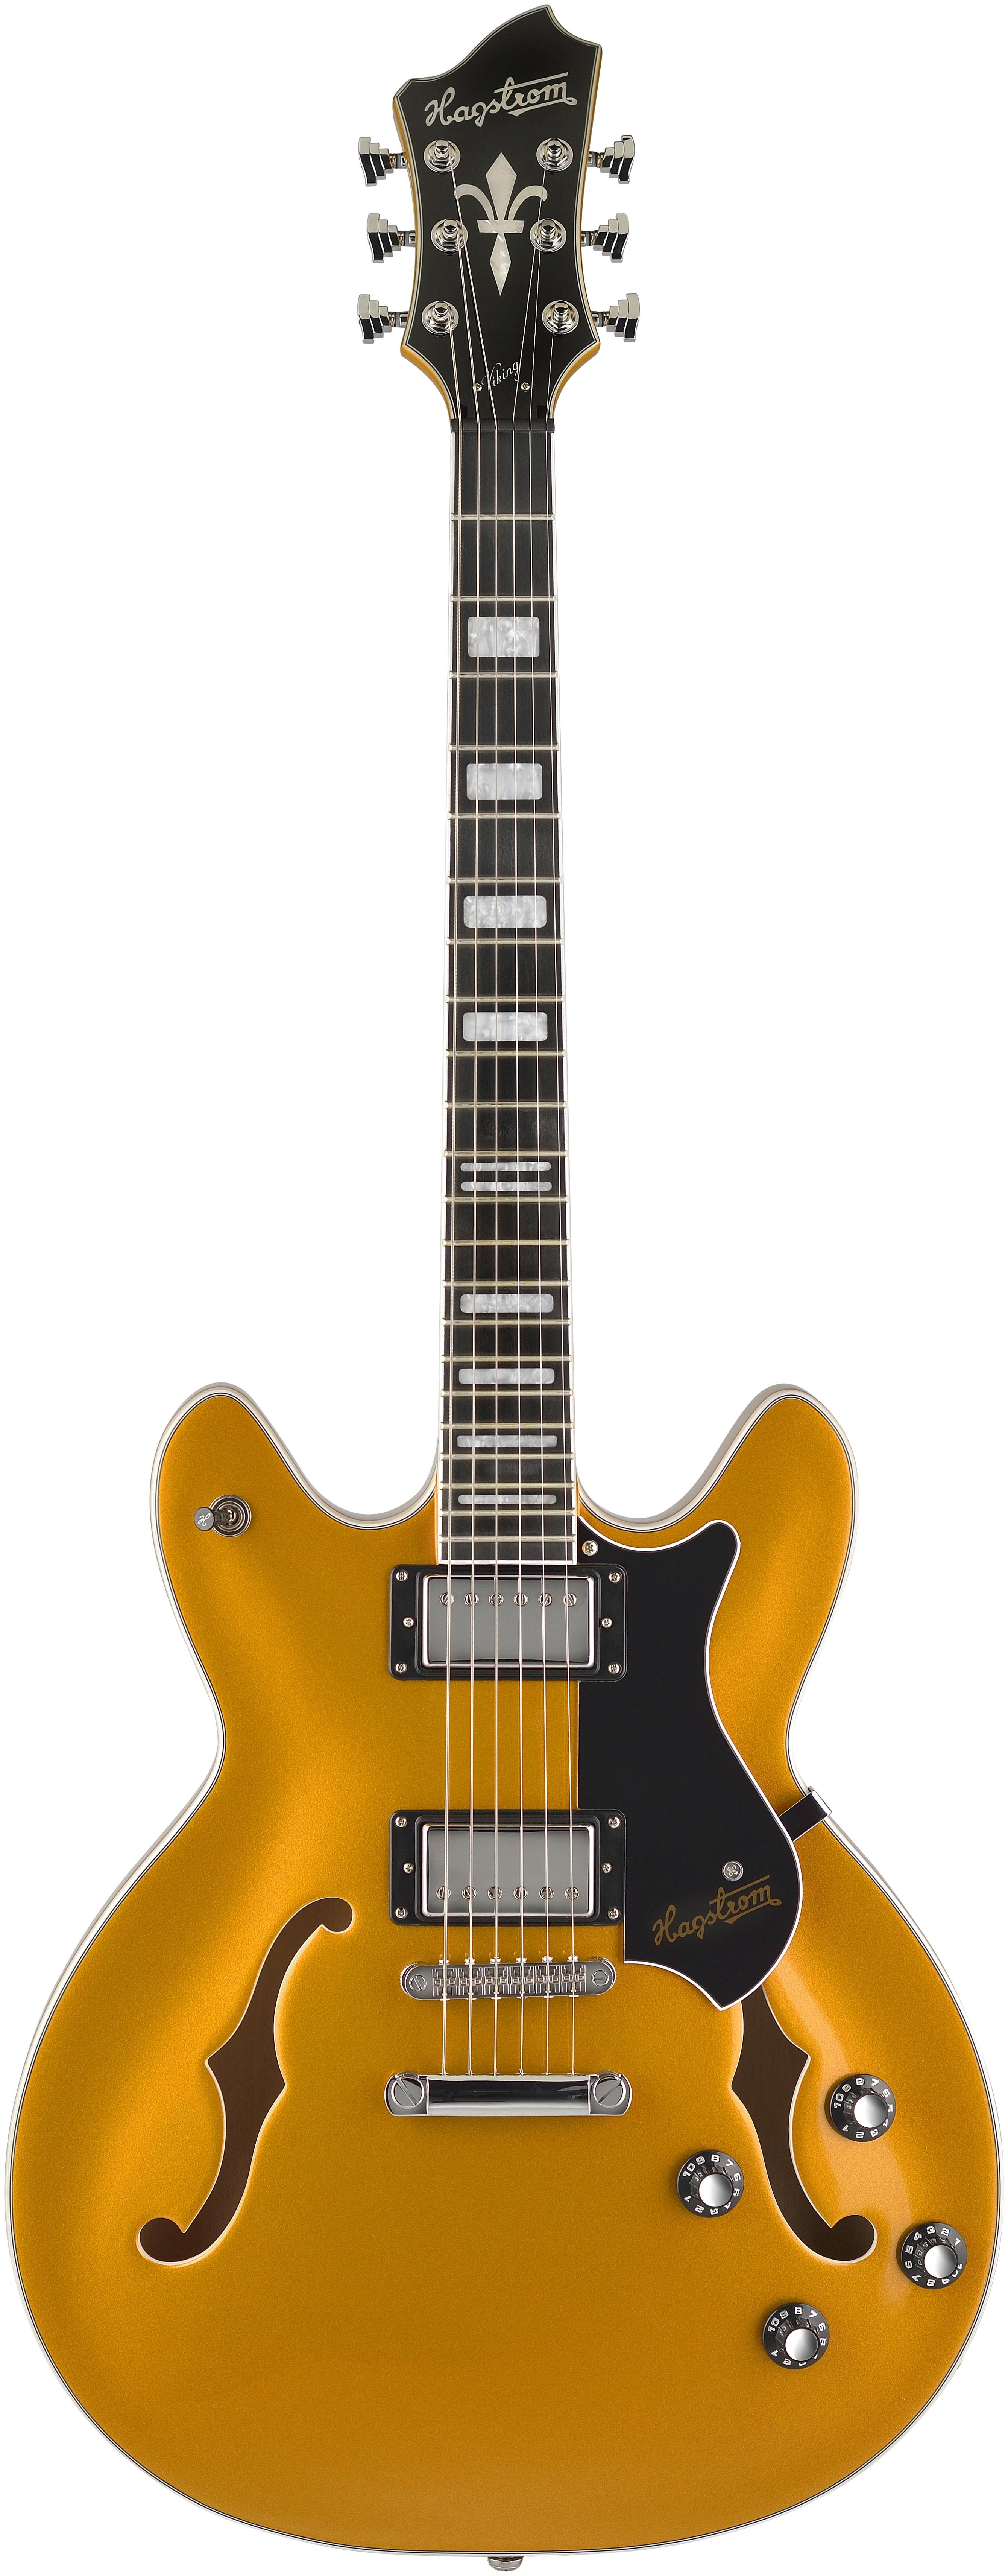 Hagstrom Artist Project Viking Gold Top